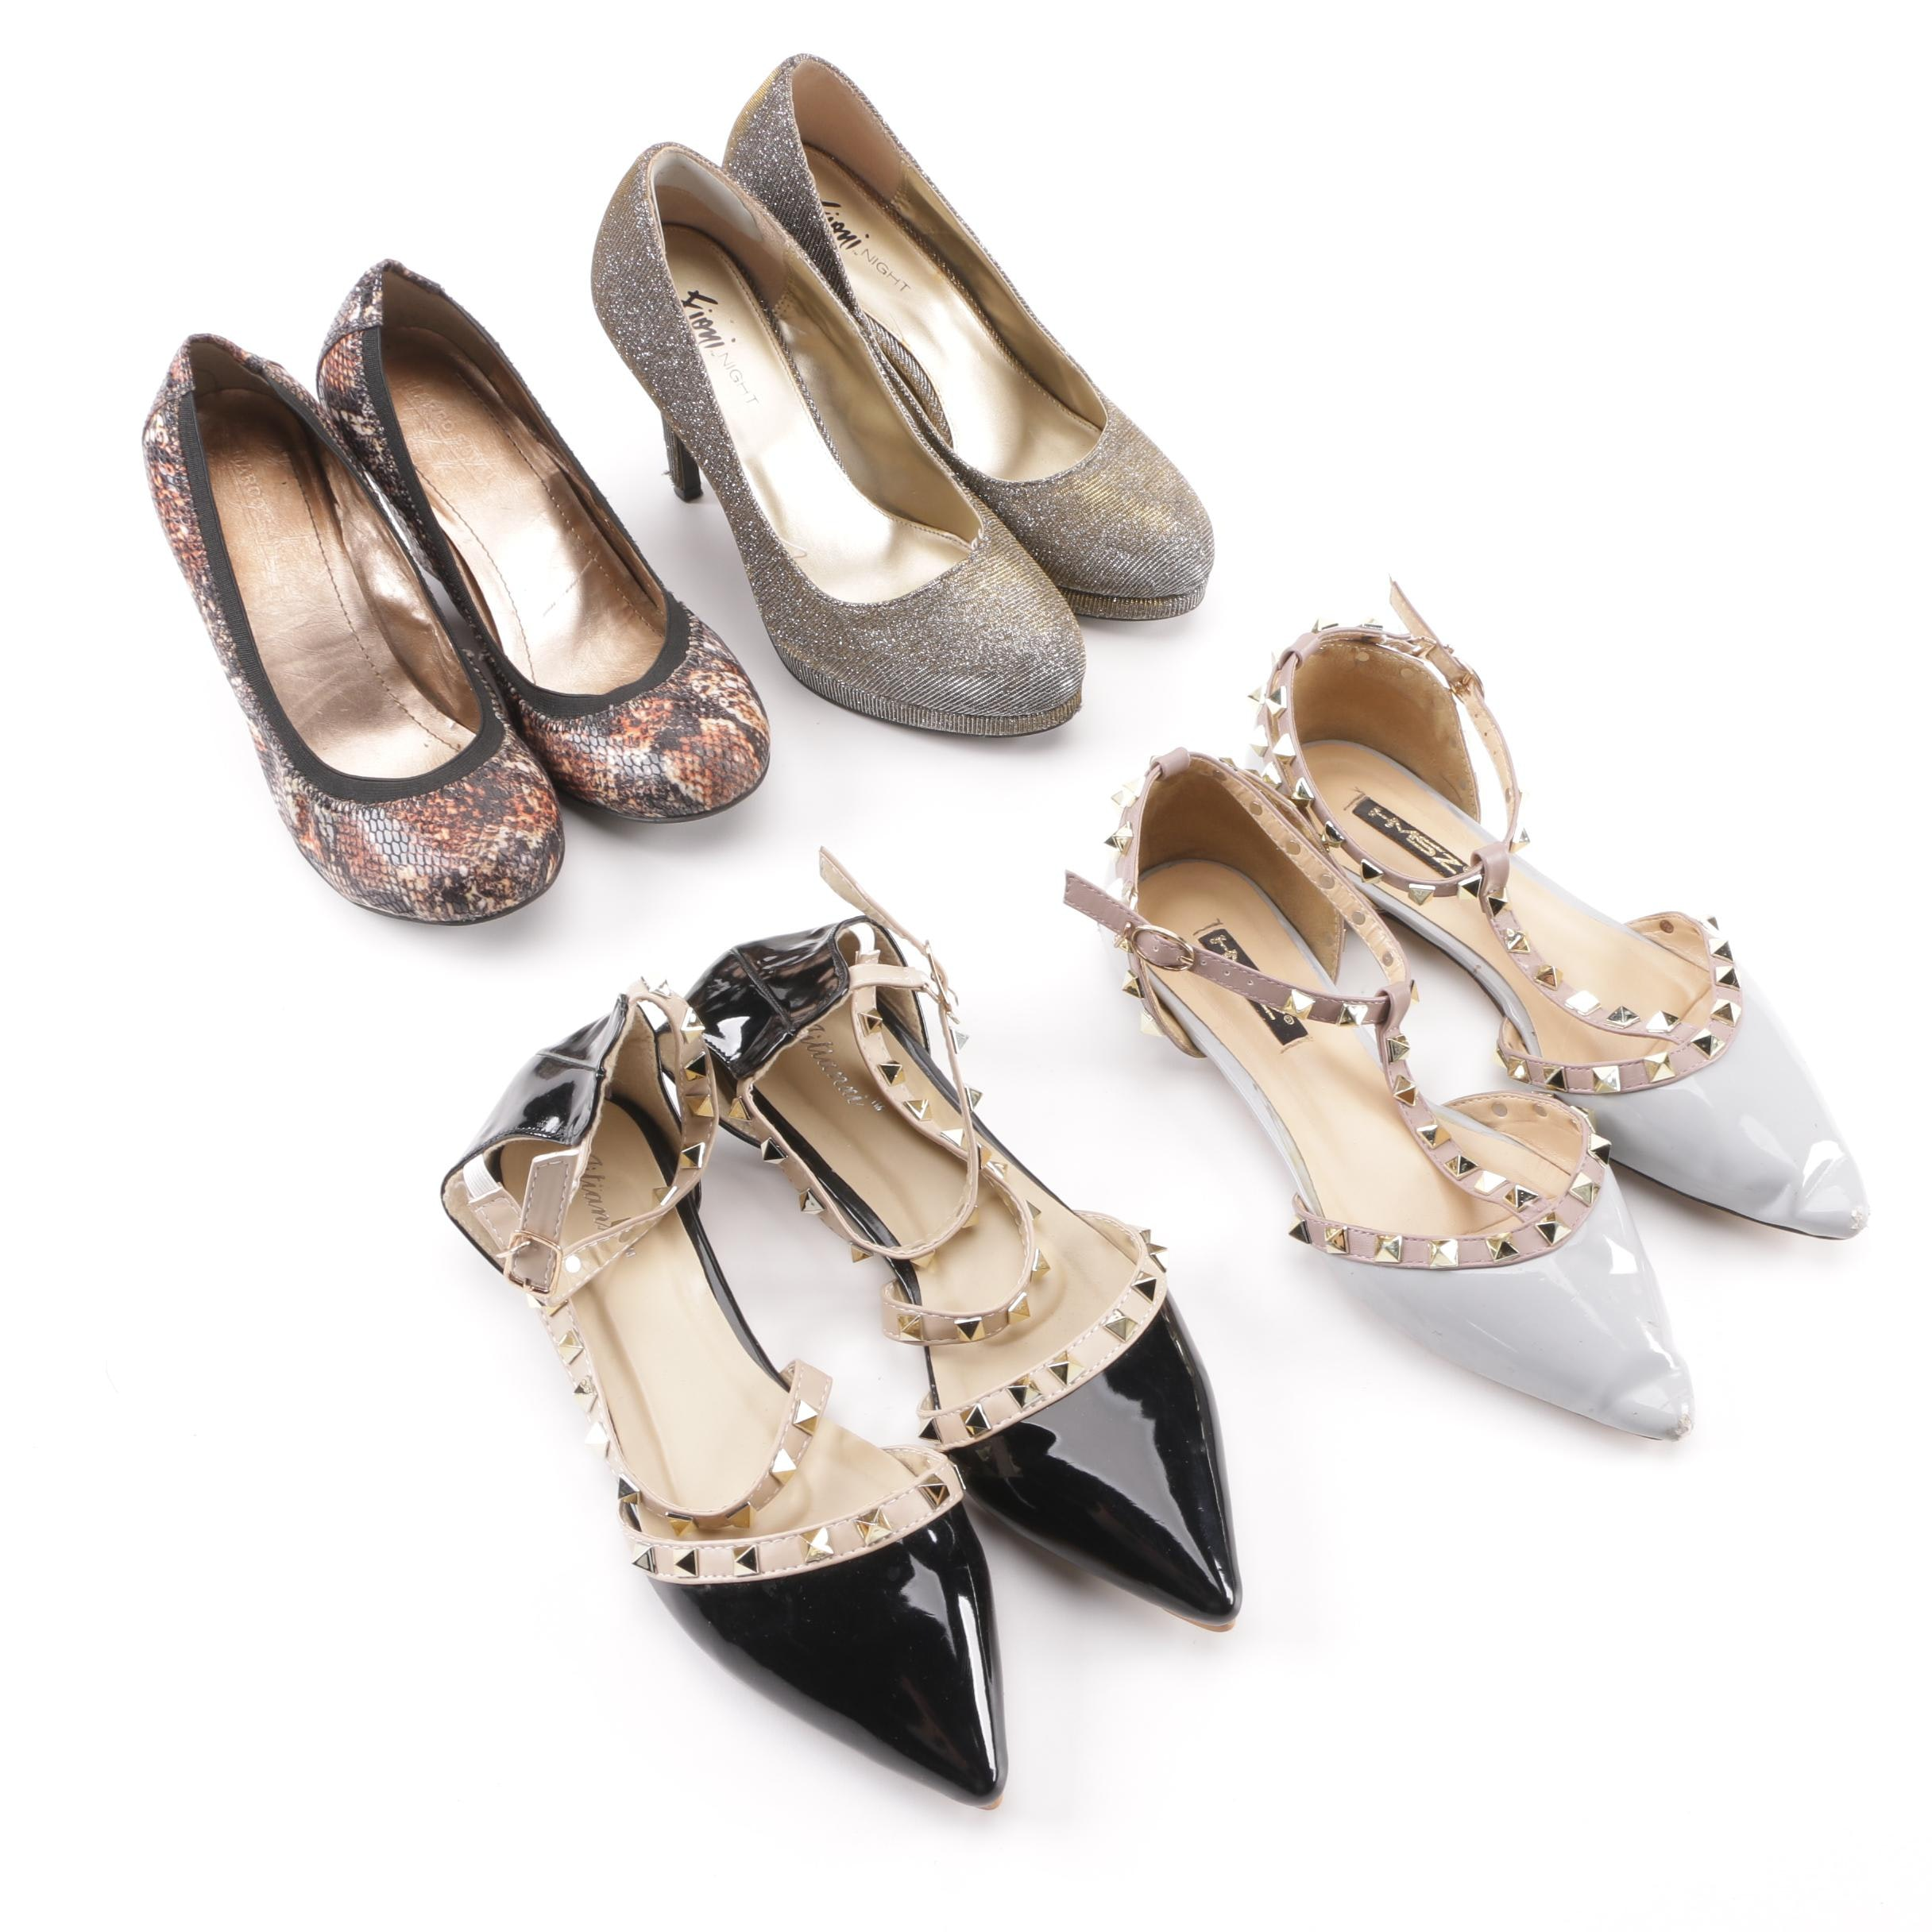 Women's Footwear including Studded Flats and Wedge and Platform Pumps